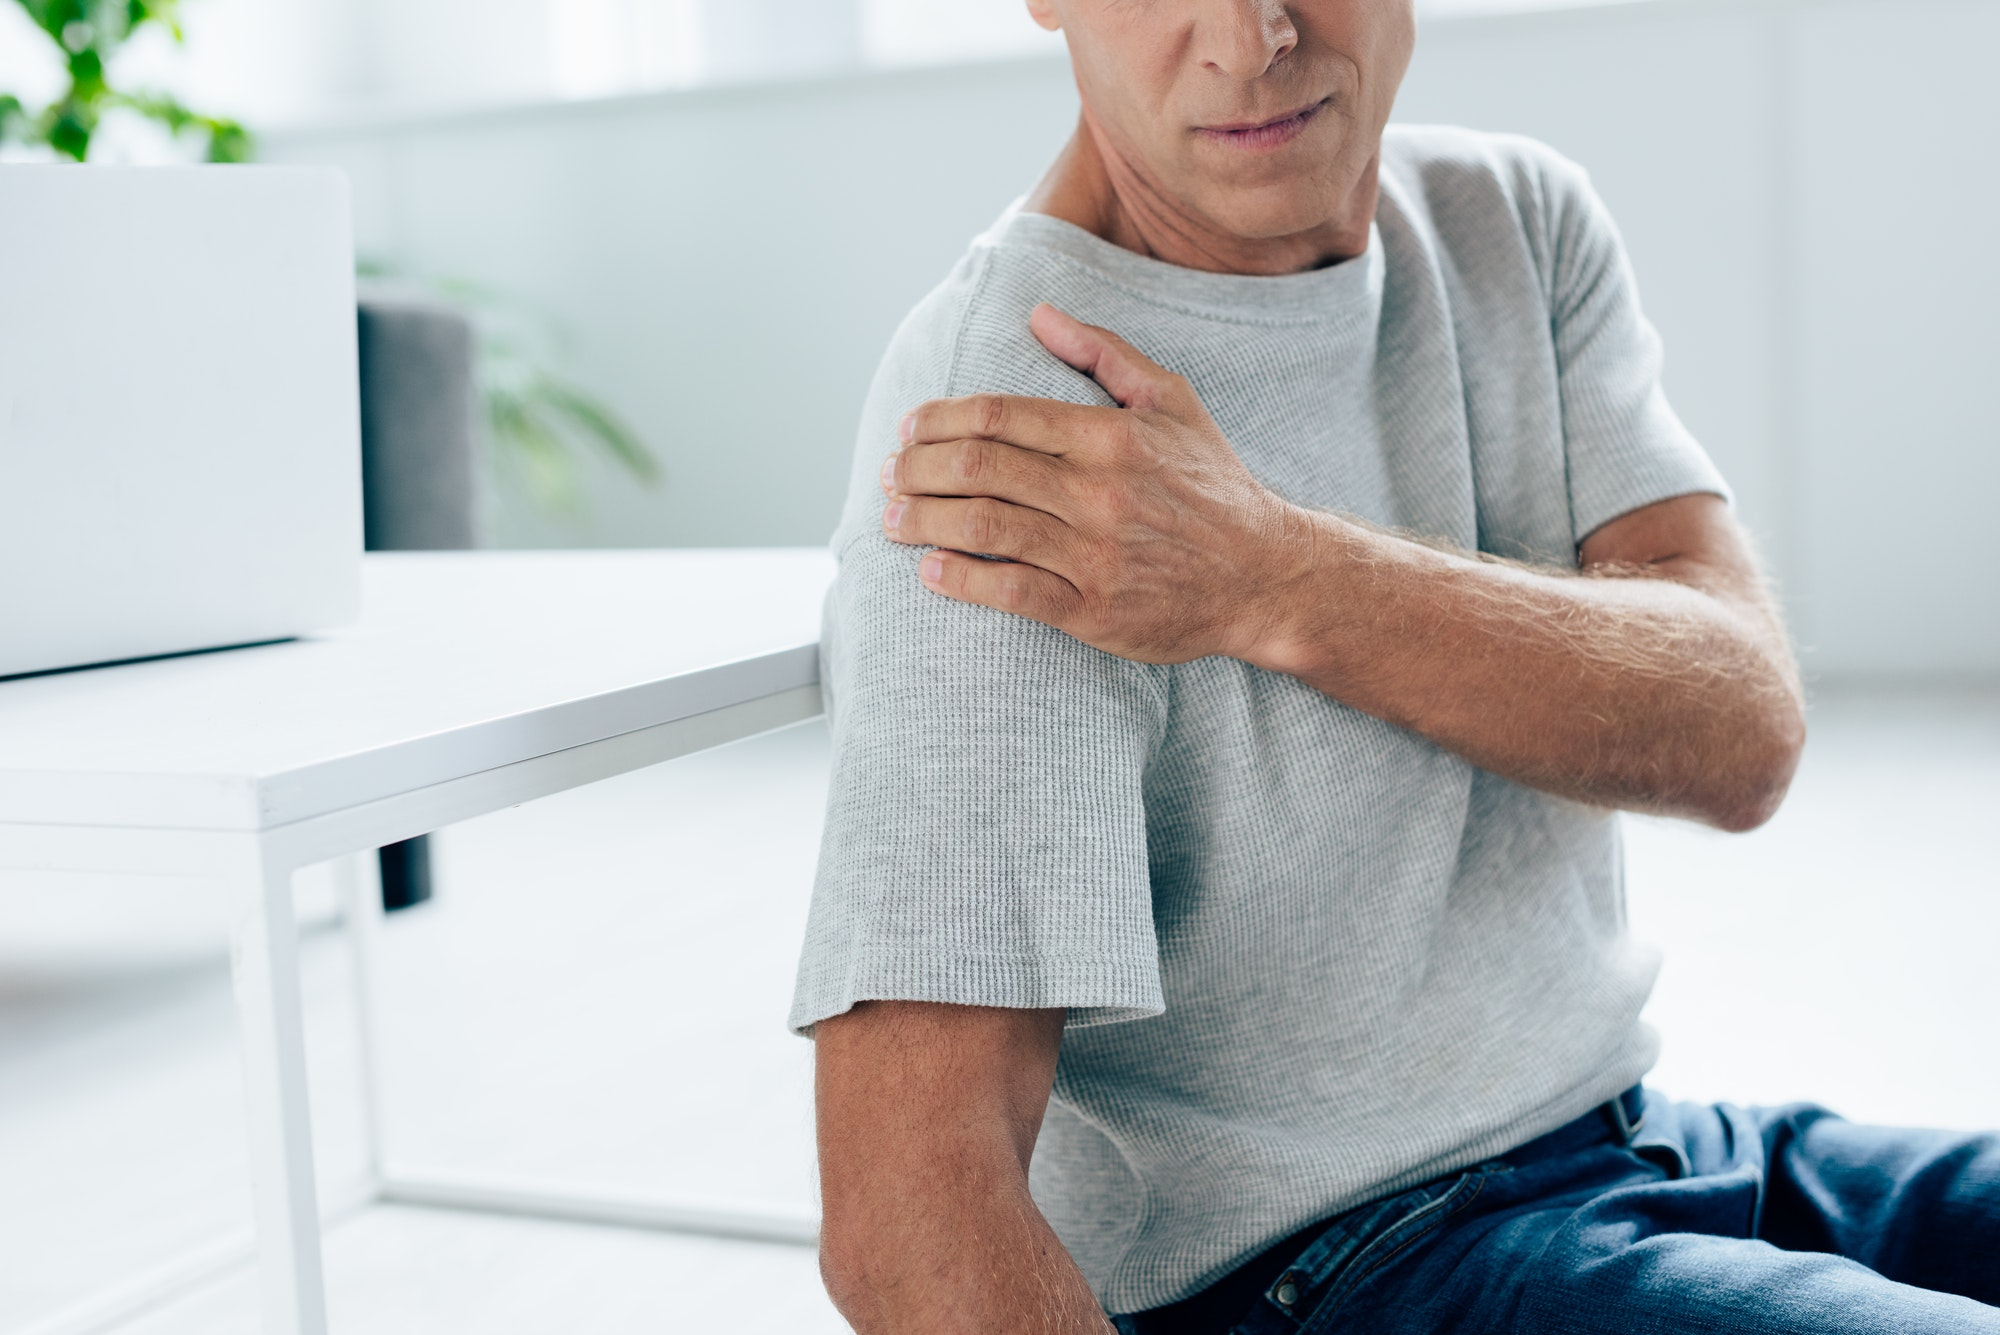 cropped view of man in t-shirt feeling pain in shoulder in apartment